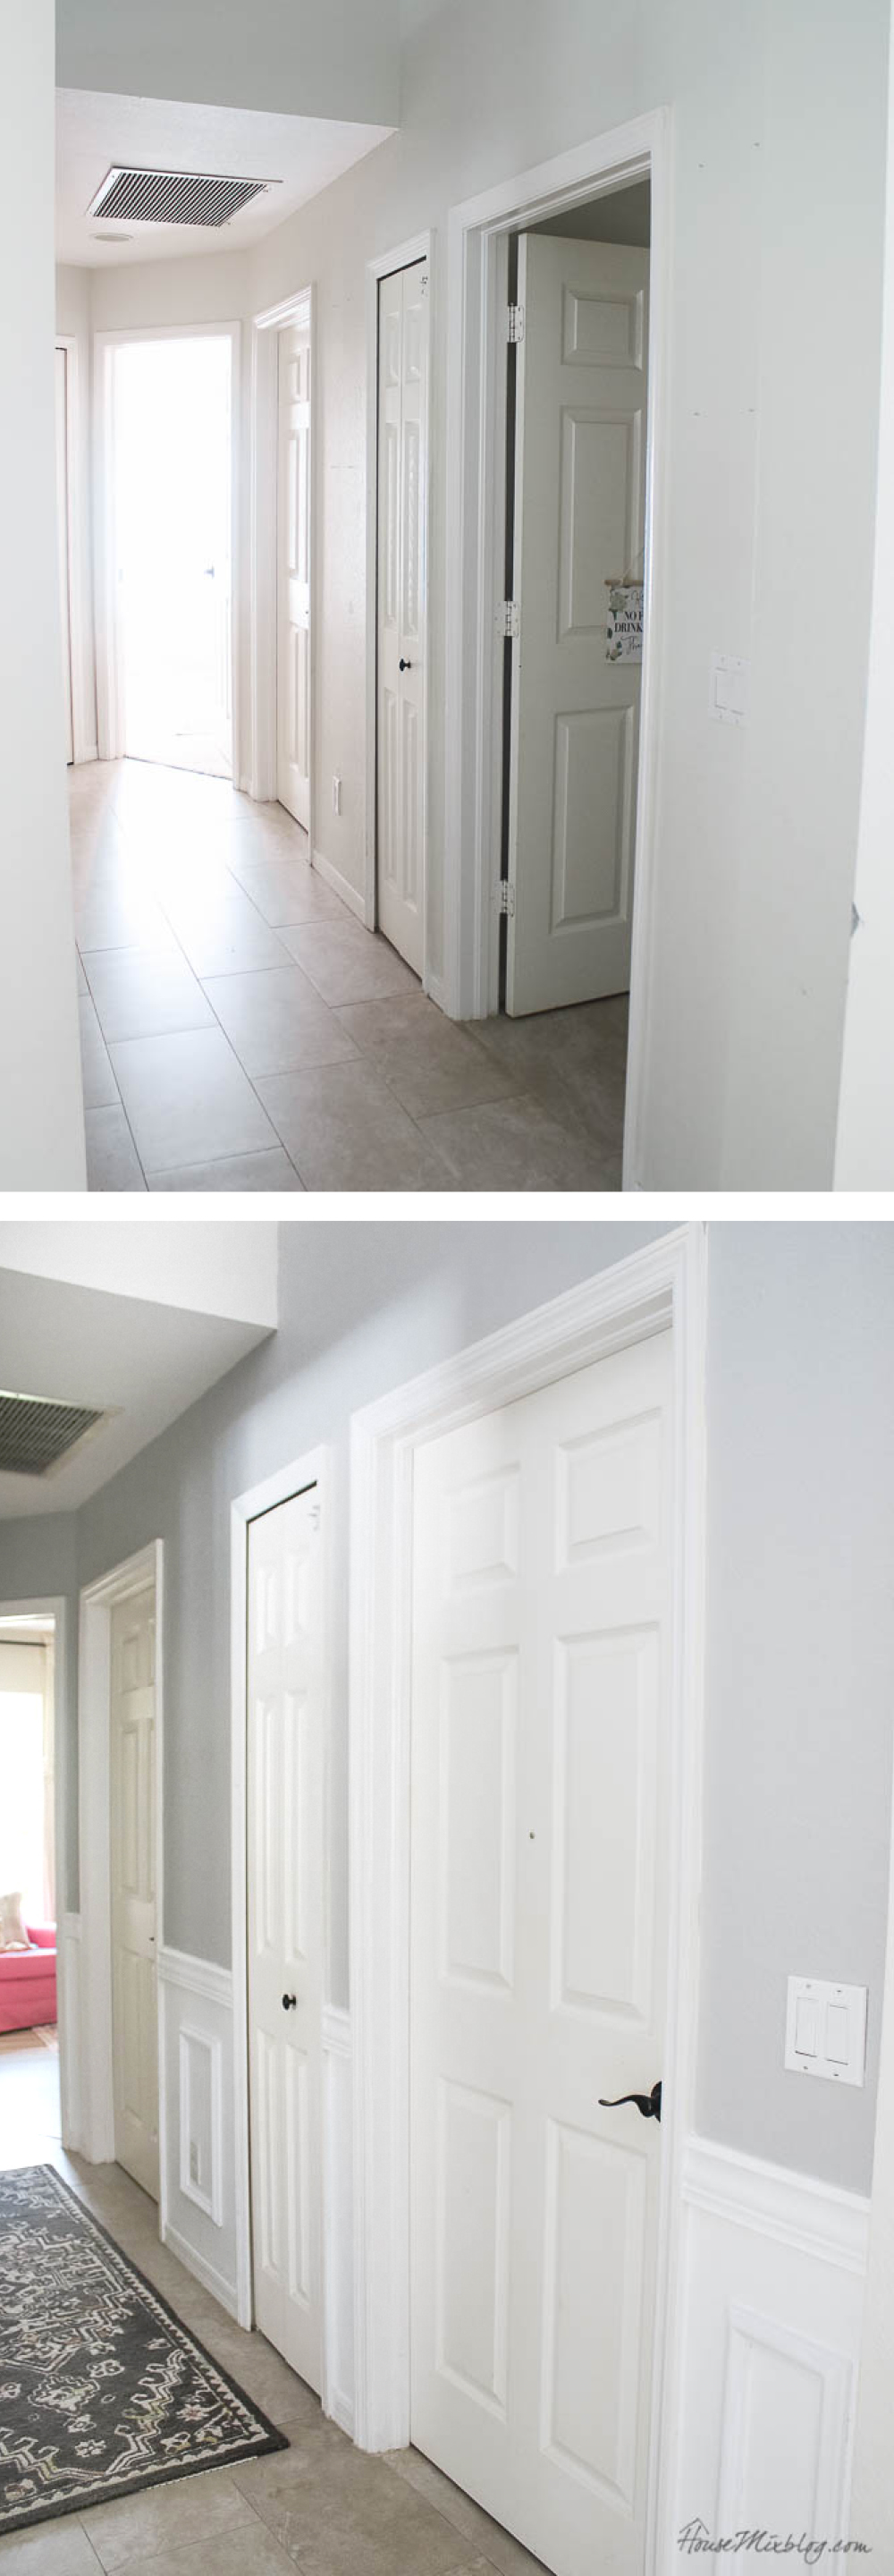 Before and after - the simplest wainscoting without power tools